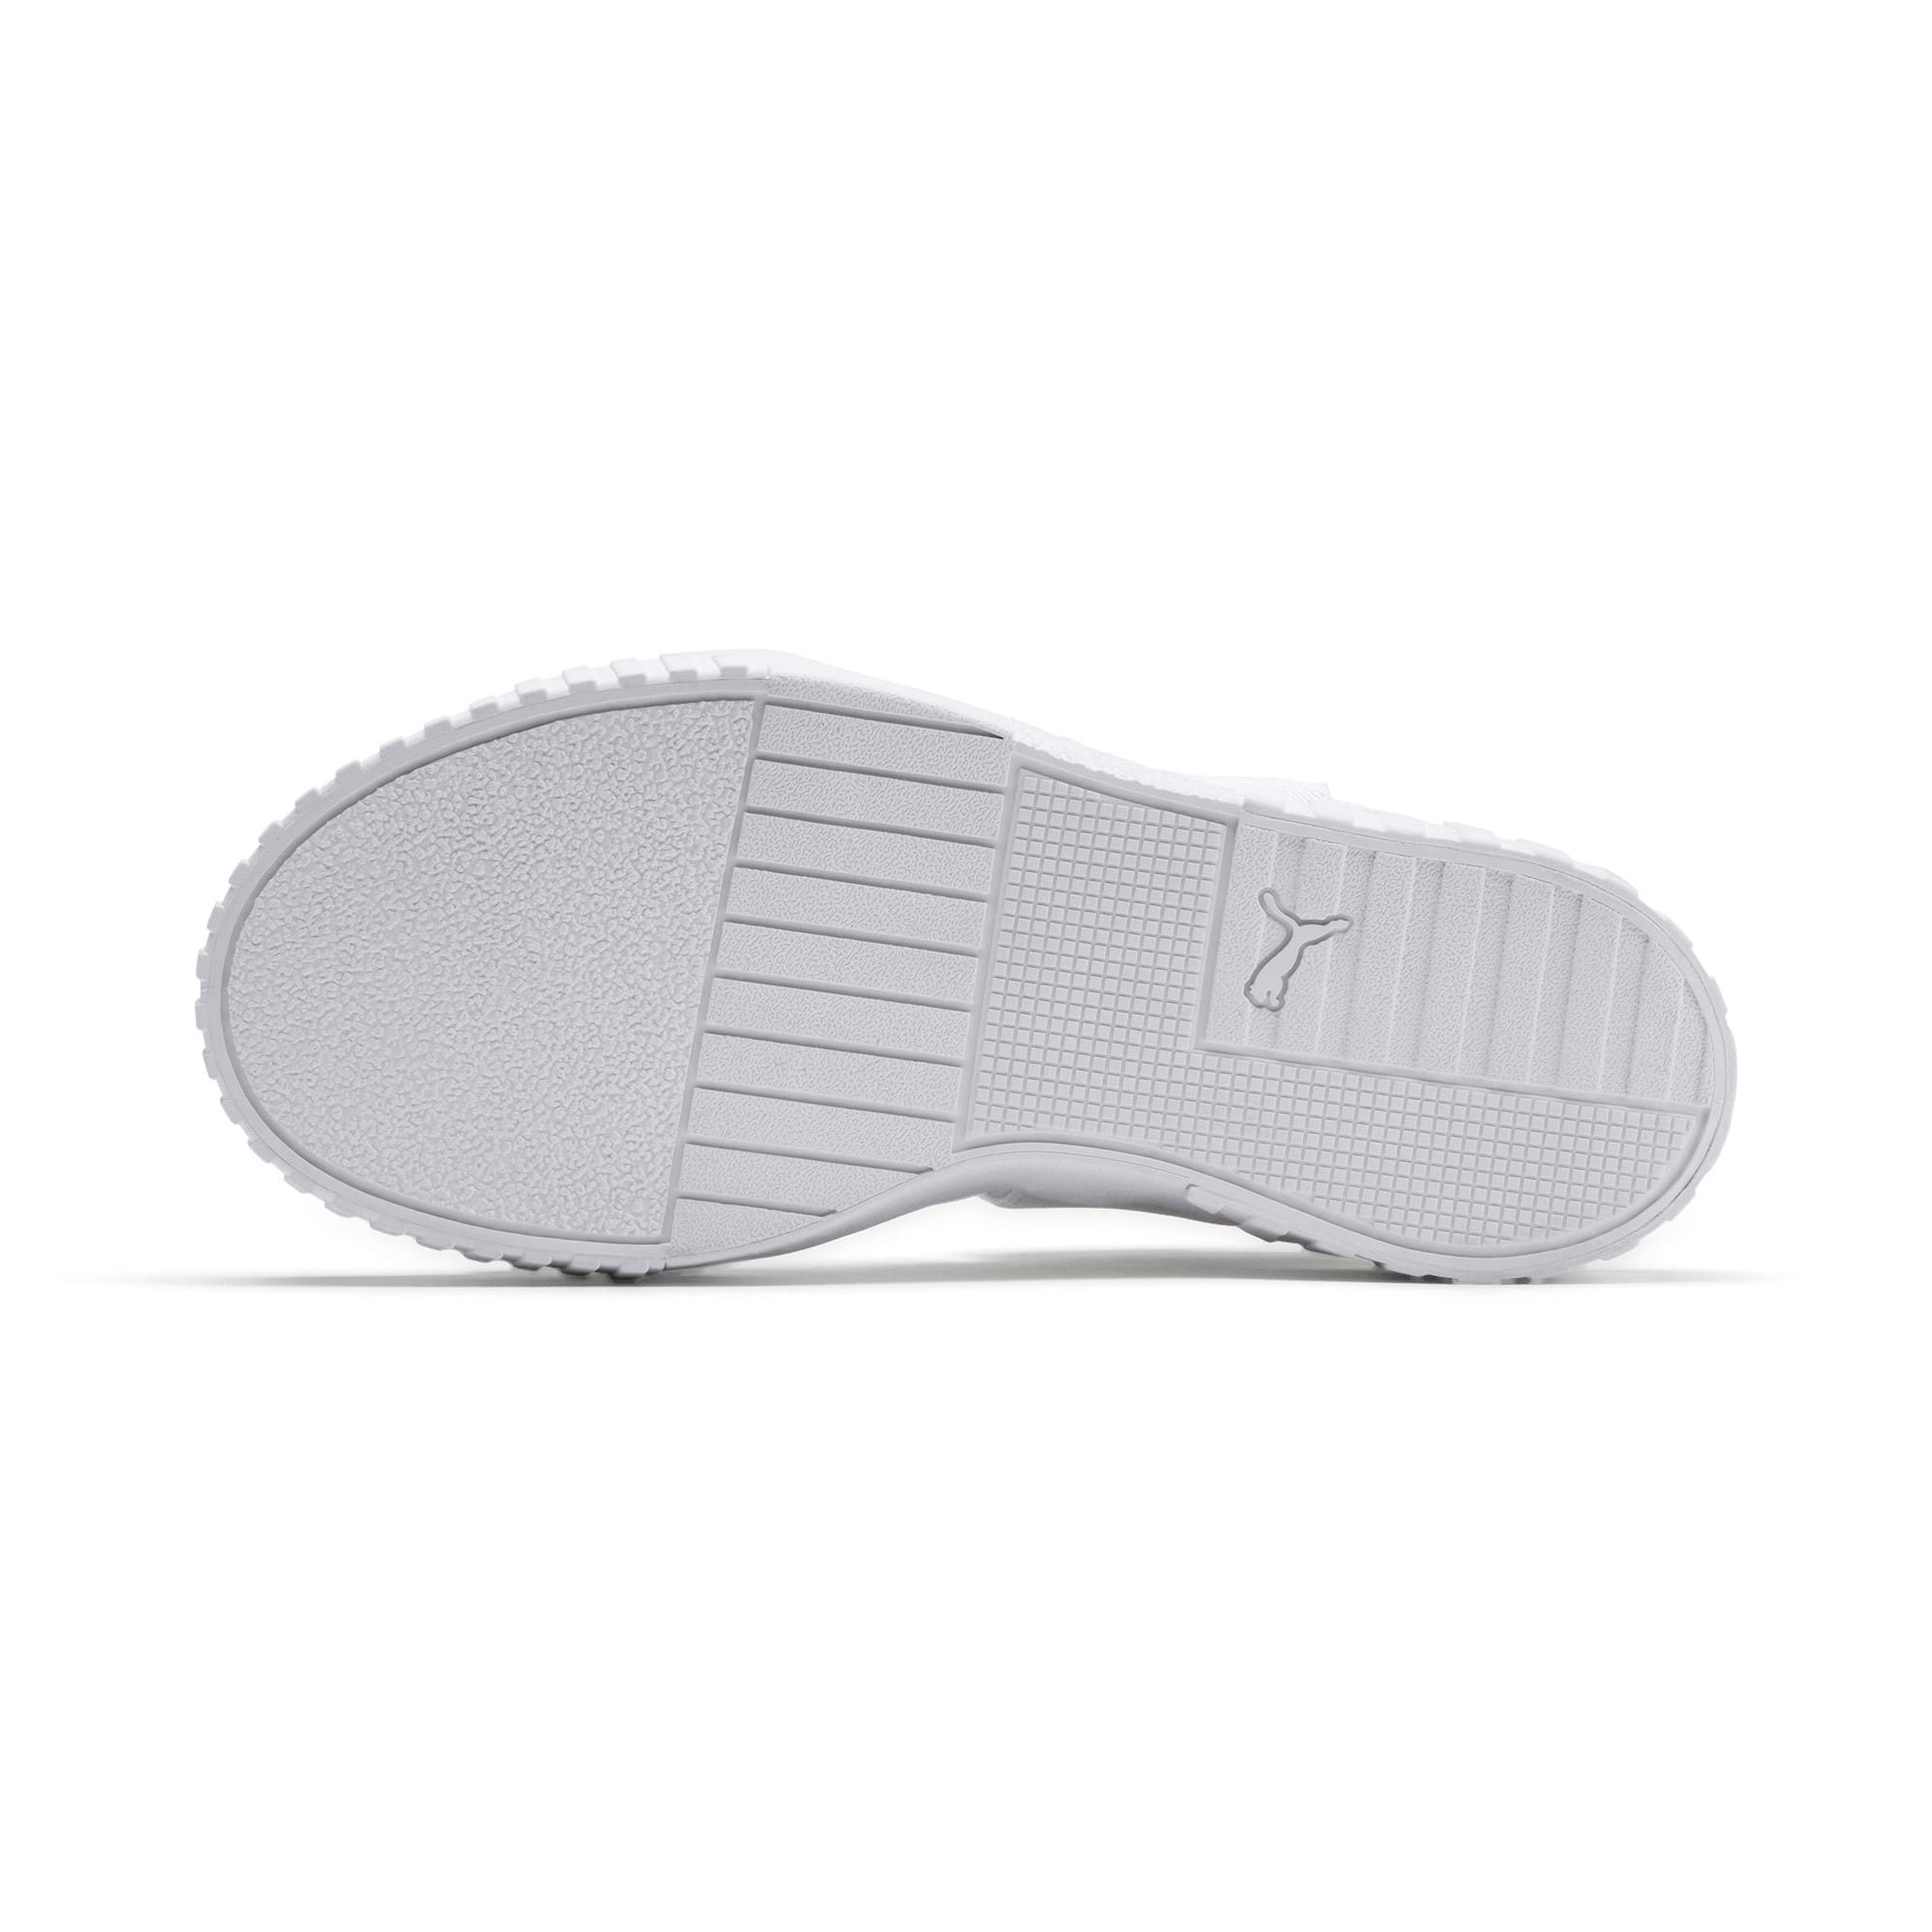 Thumbnail 5 of PUMA x SELENA GOMEZ Cali Damen Sandalen, Puma White, medium